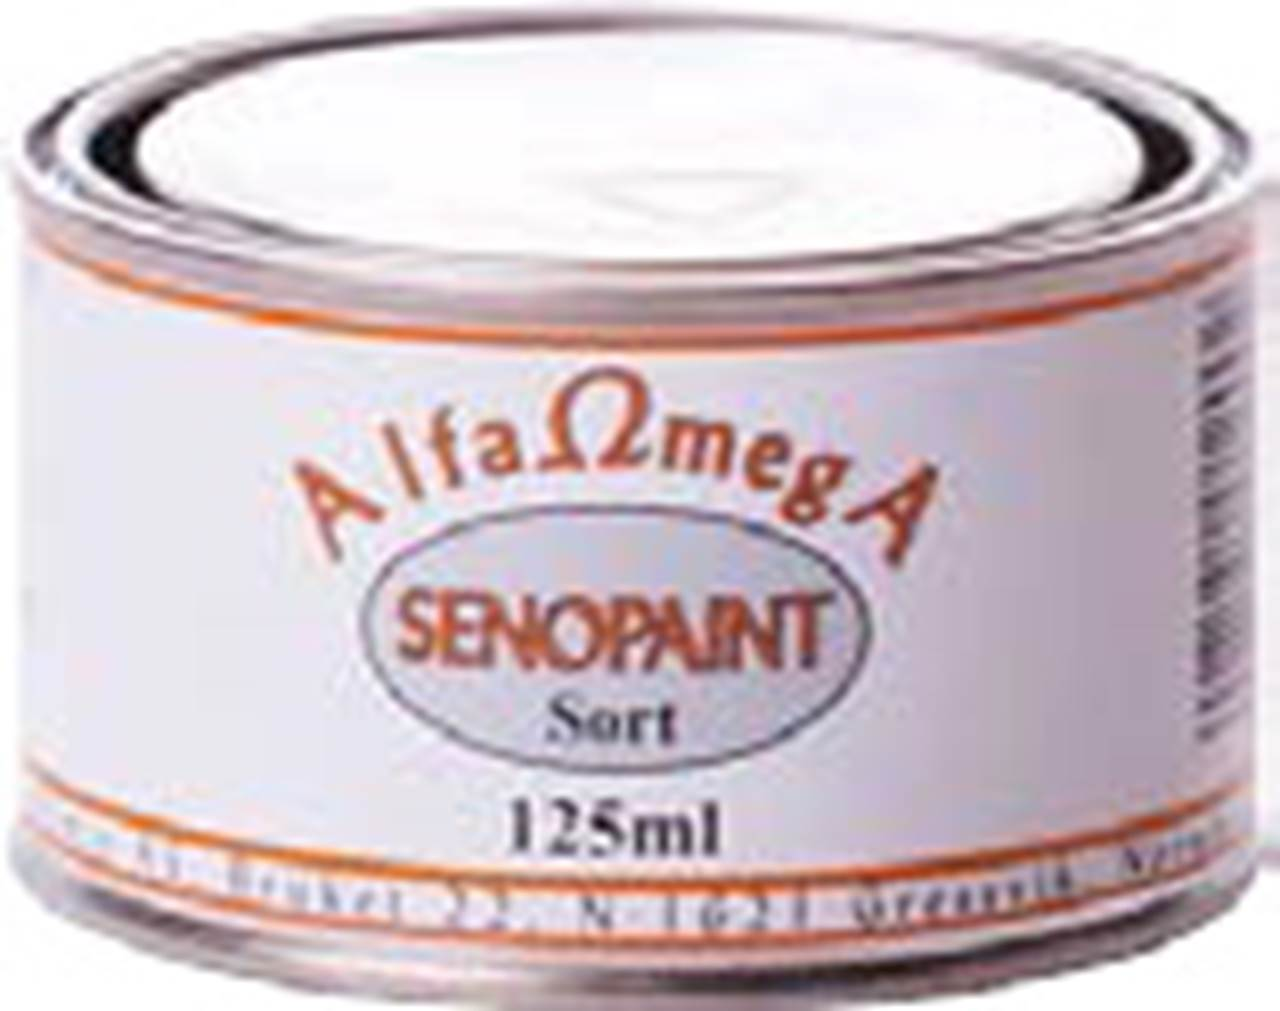 SENOPAINT 1/8 BOX, SORT 700° C  1,25 dl